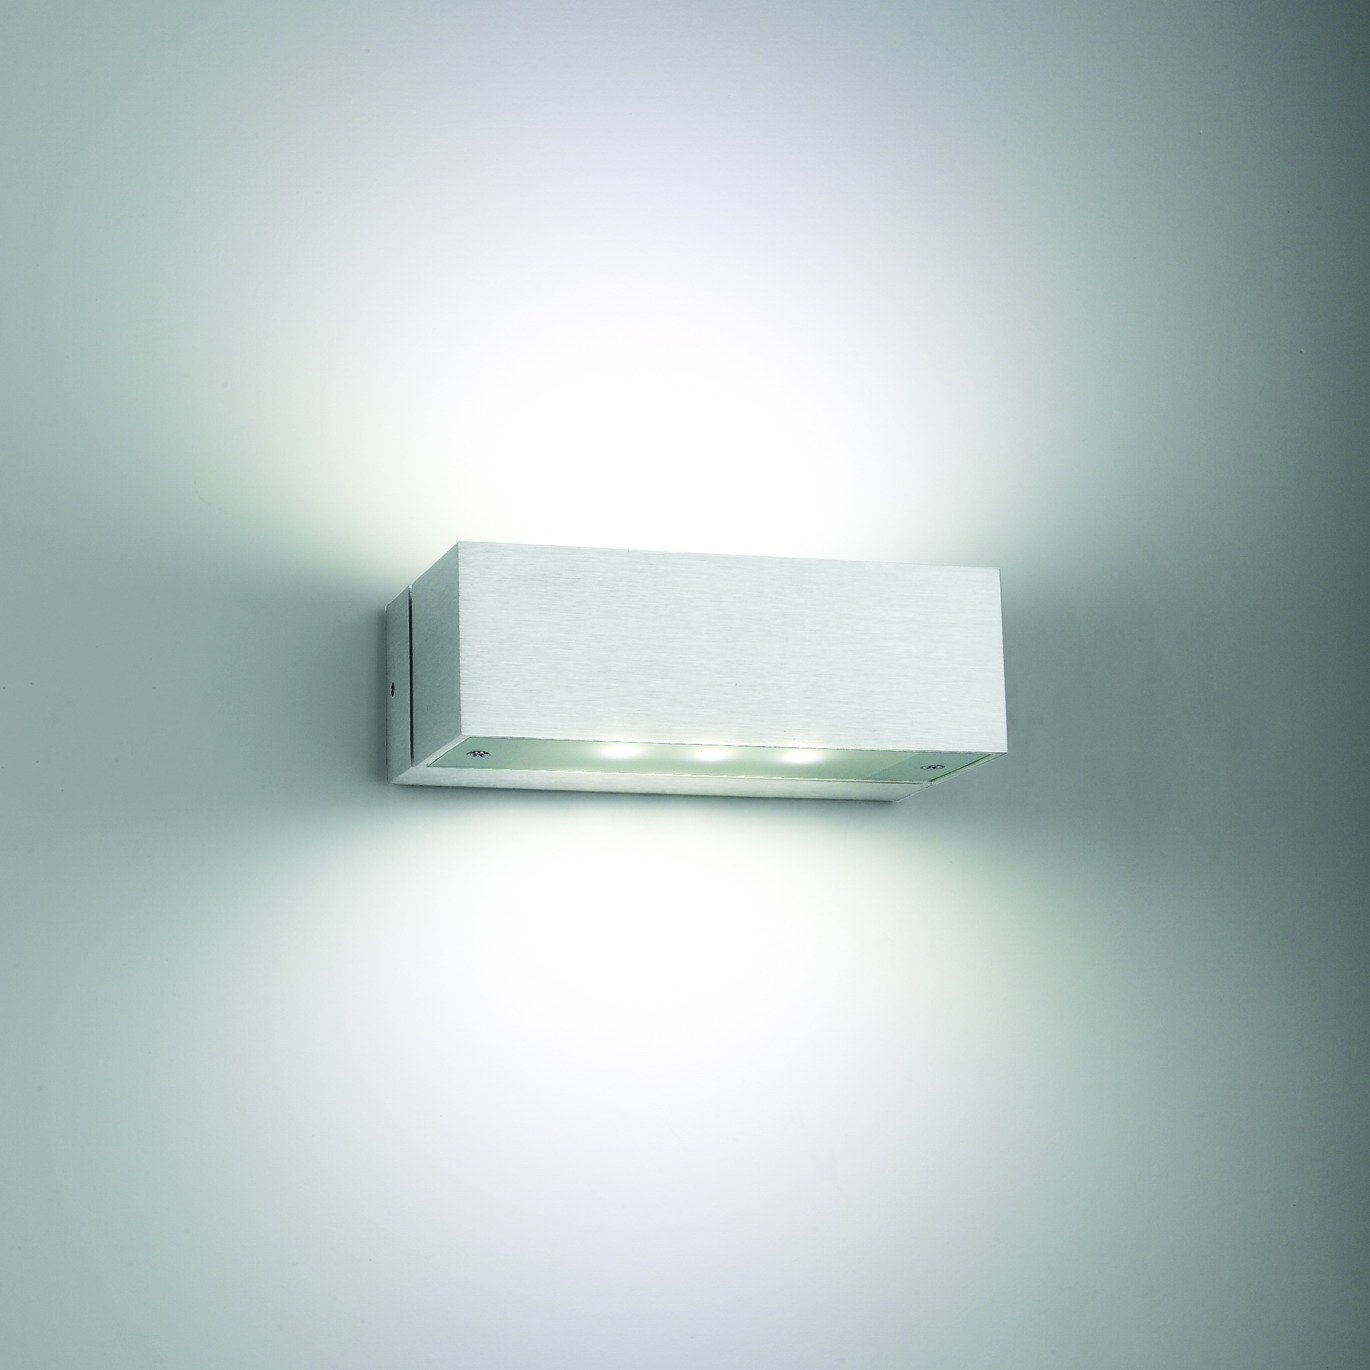 Photos Of Wall Lights : Led wall light indoor - the necessary electrical technique of your home Warisan Lighting